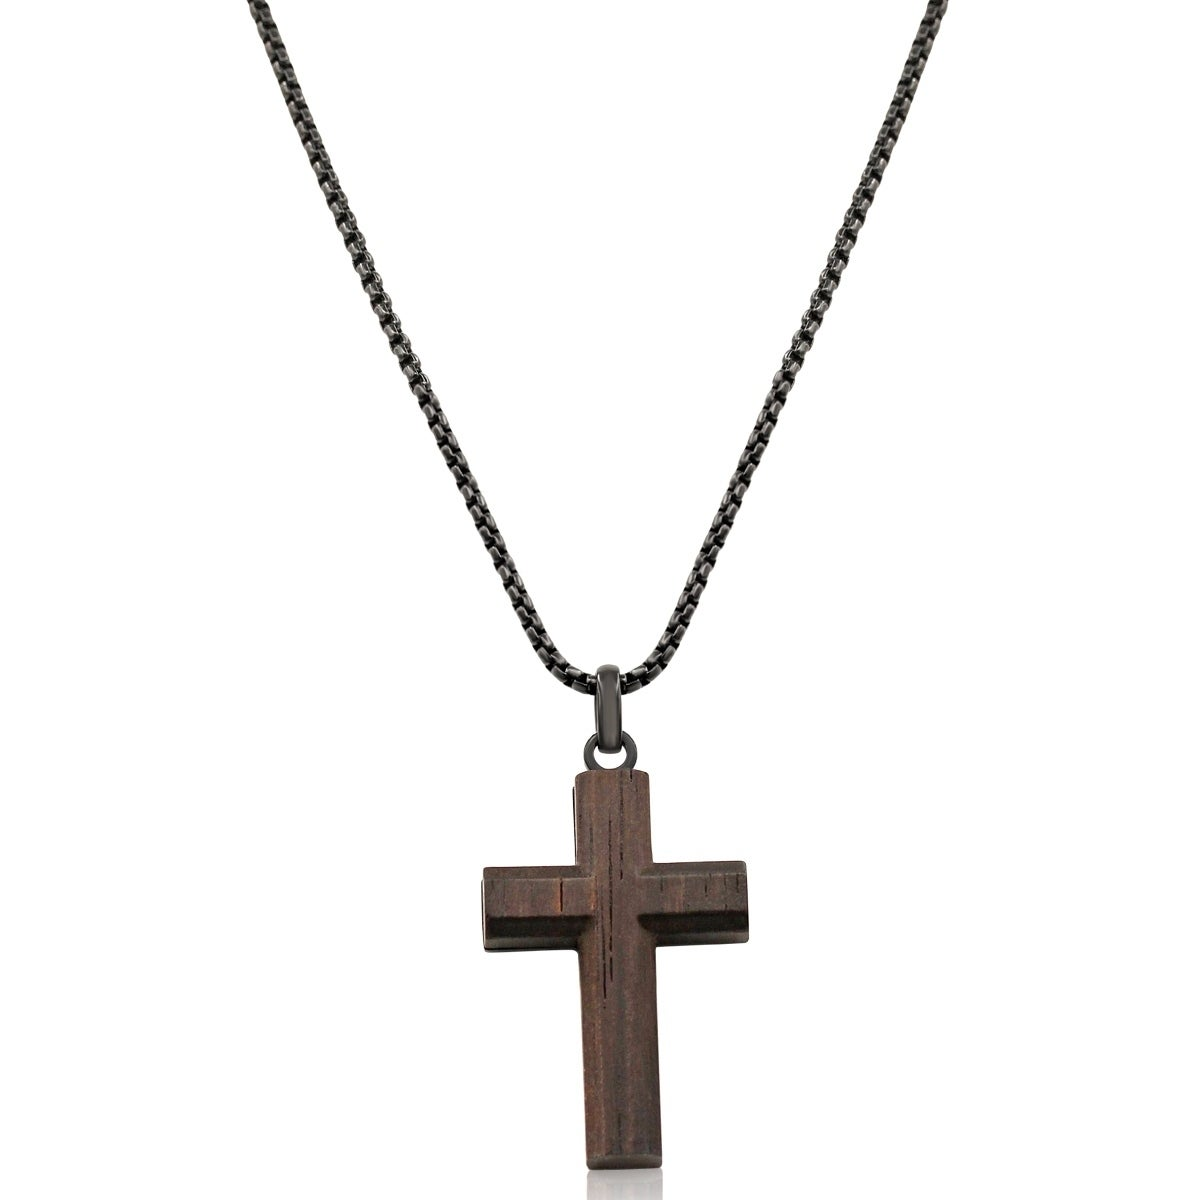 Koa wood and black stainless steel cross necklace 24 inches free koa wood and black stainless steel cross necklace 24 inches free shipping on orders over 45 overstock 26336277 aloadofball Choice Image